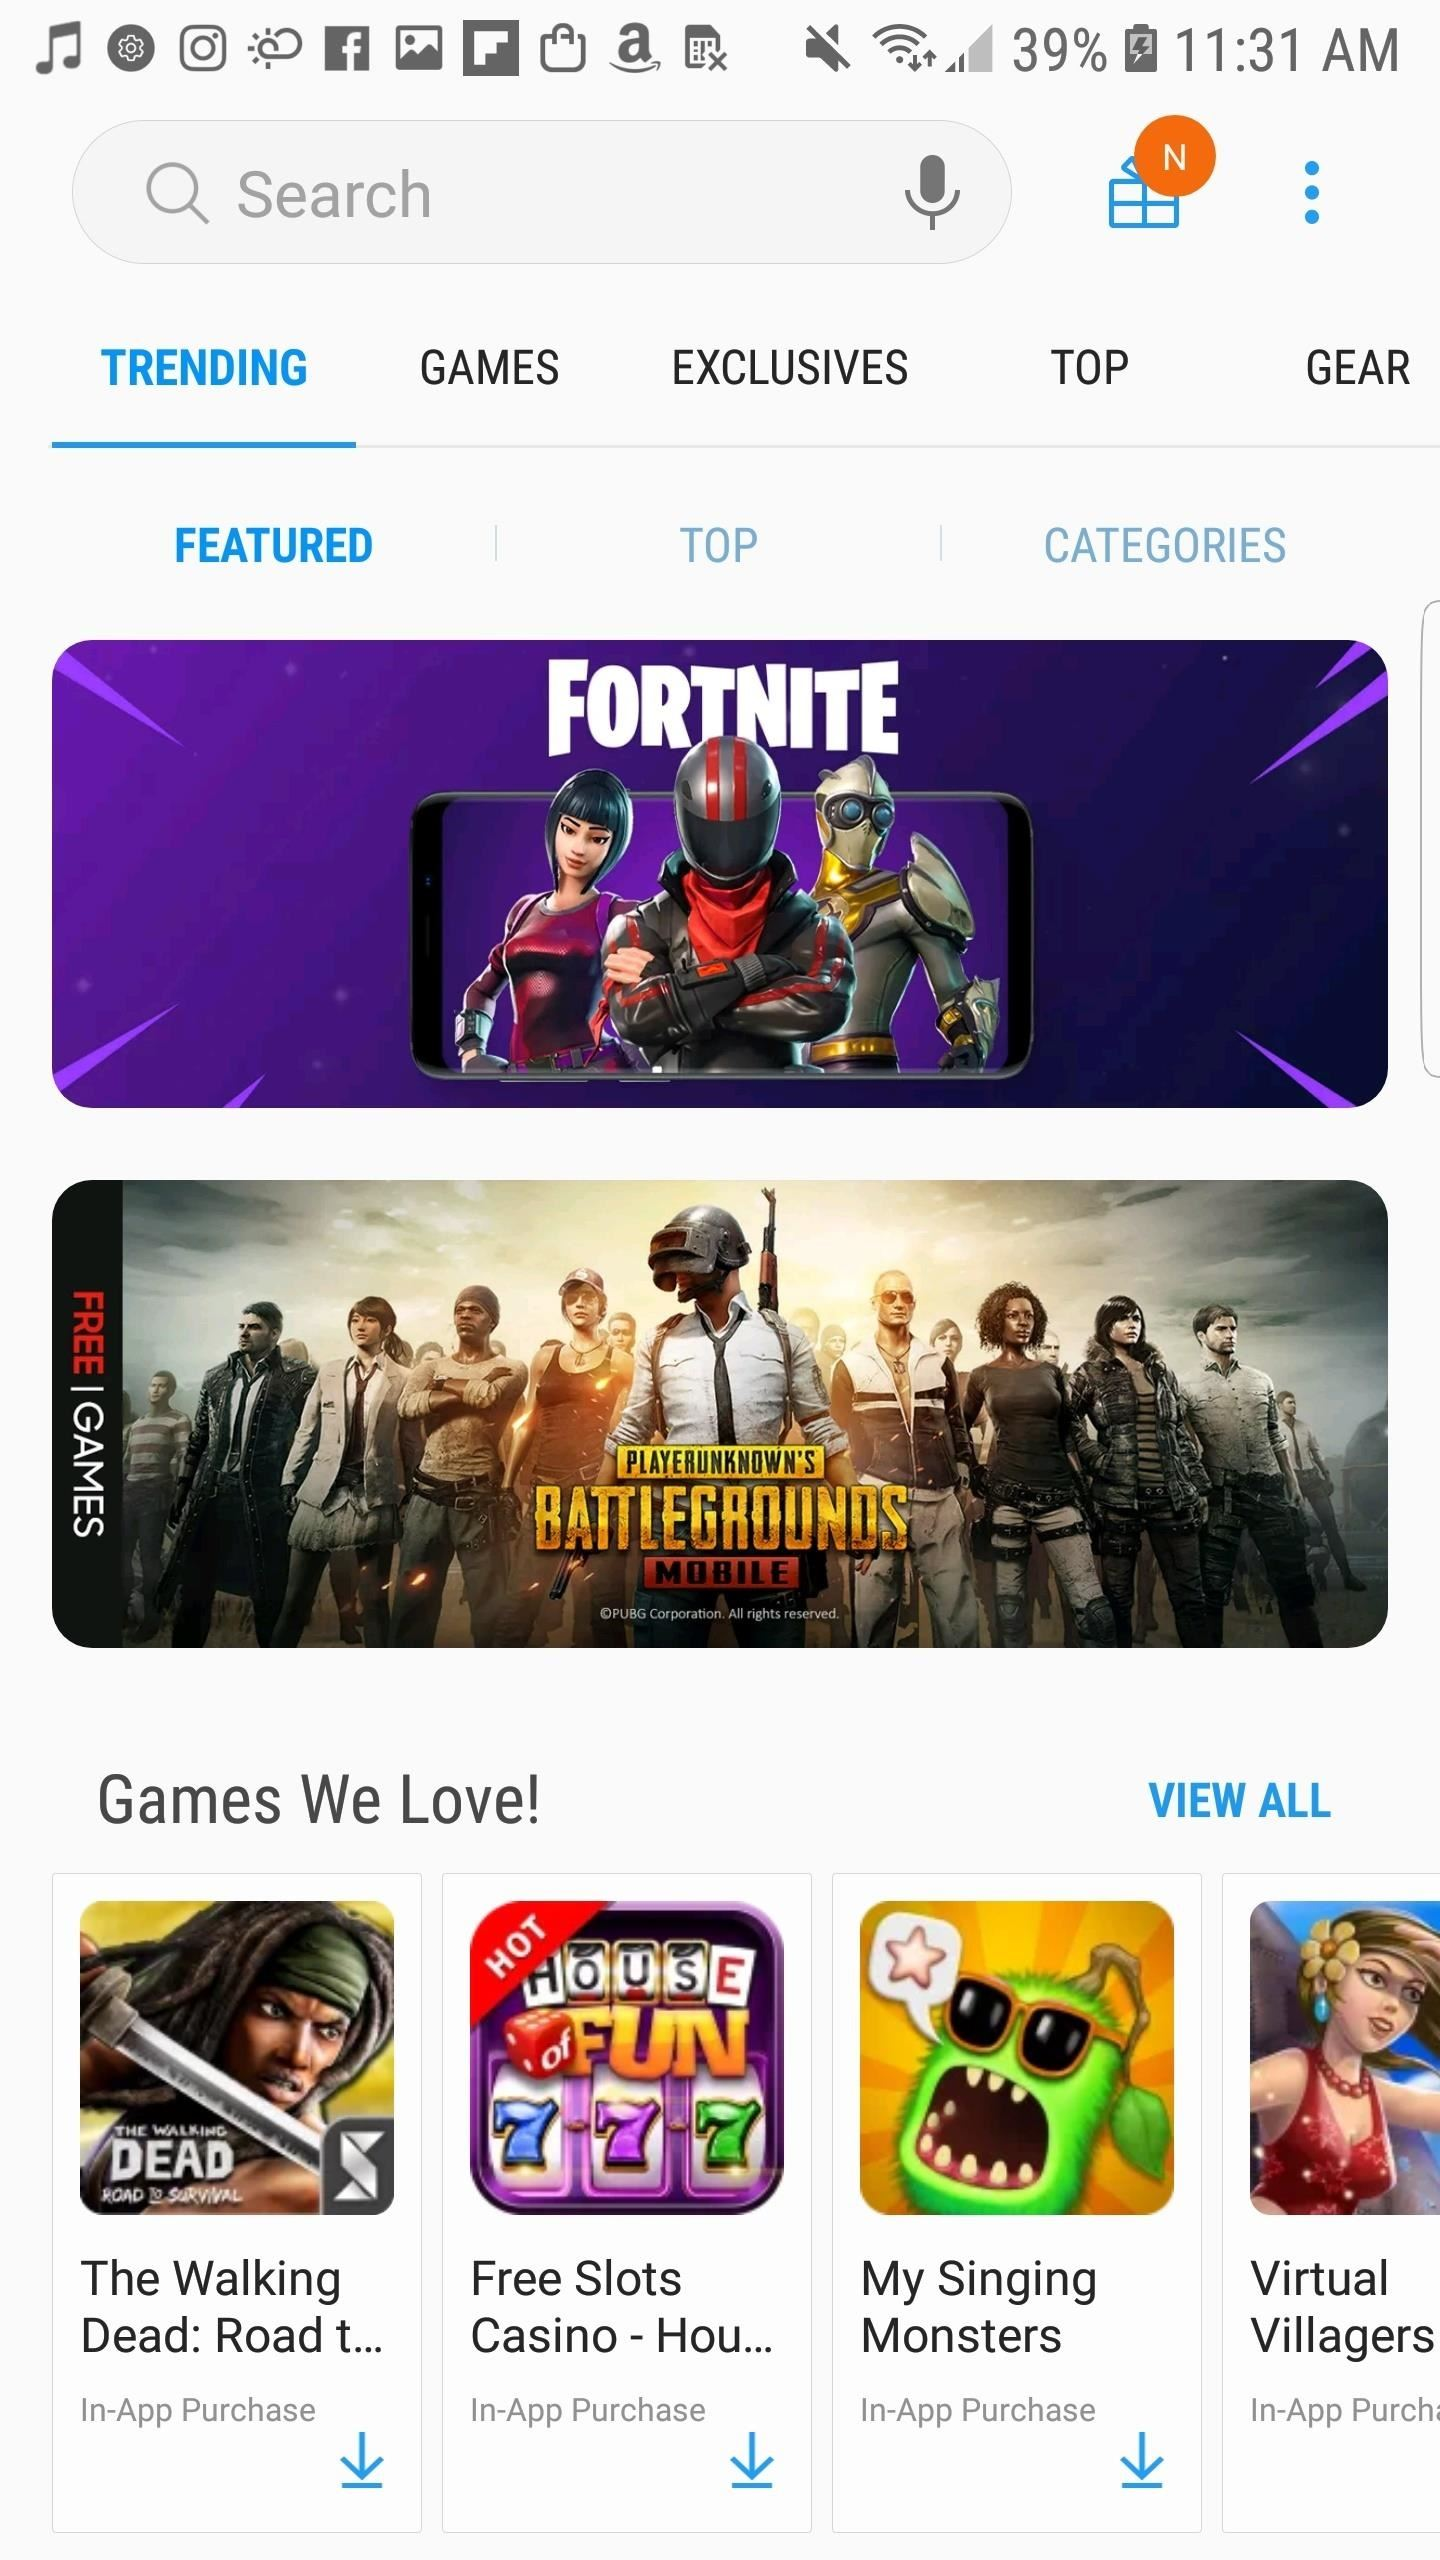 How to Get Fortnite for Android on Your Galaxy S7, S8, S9, or Note 8